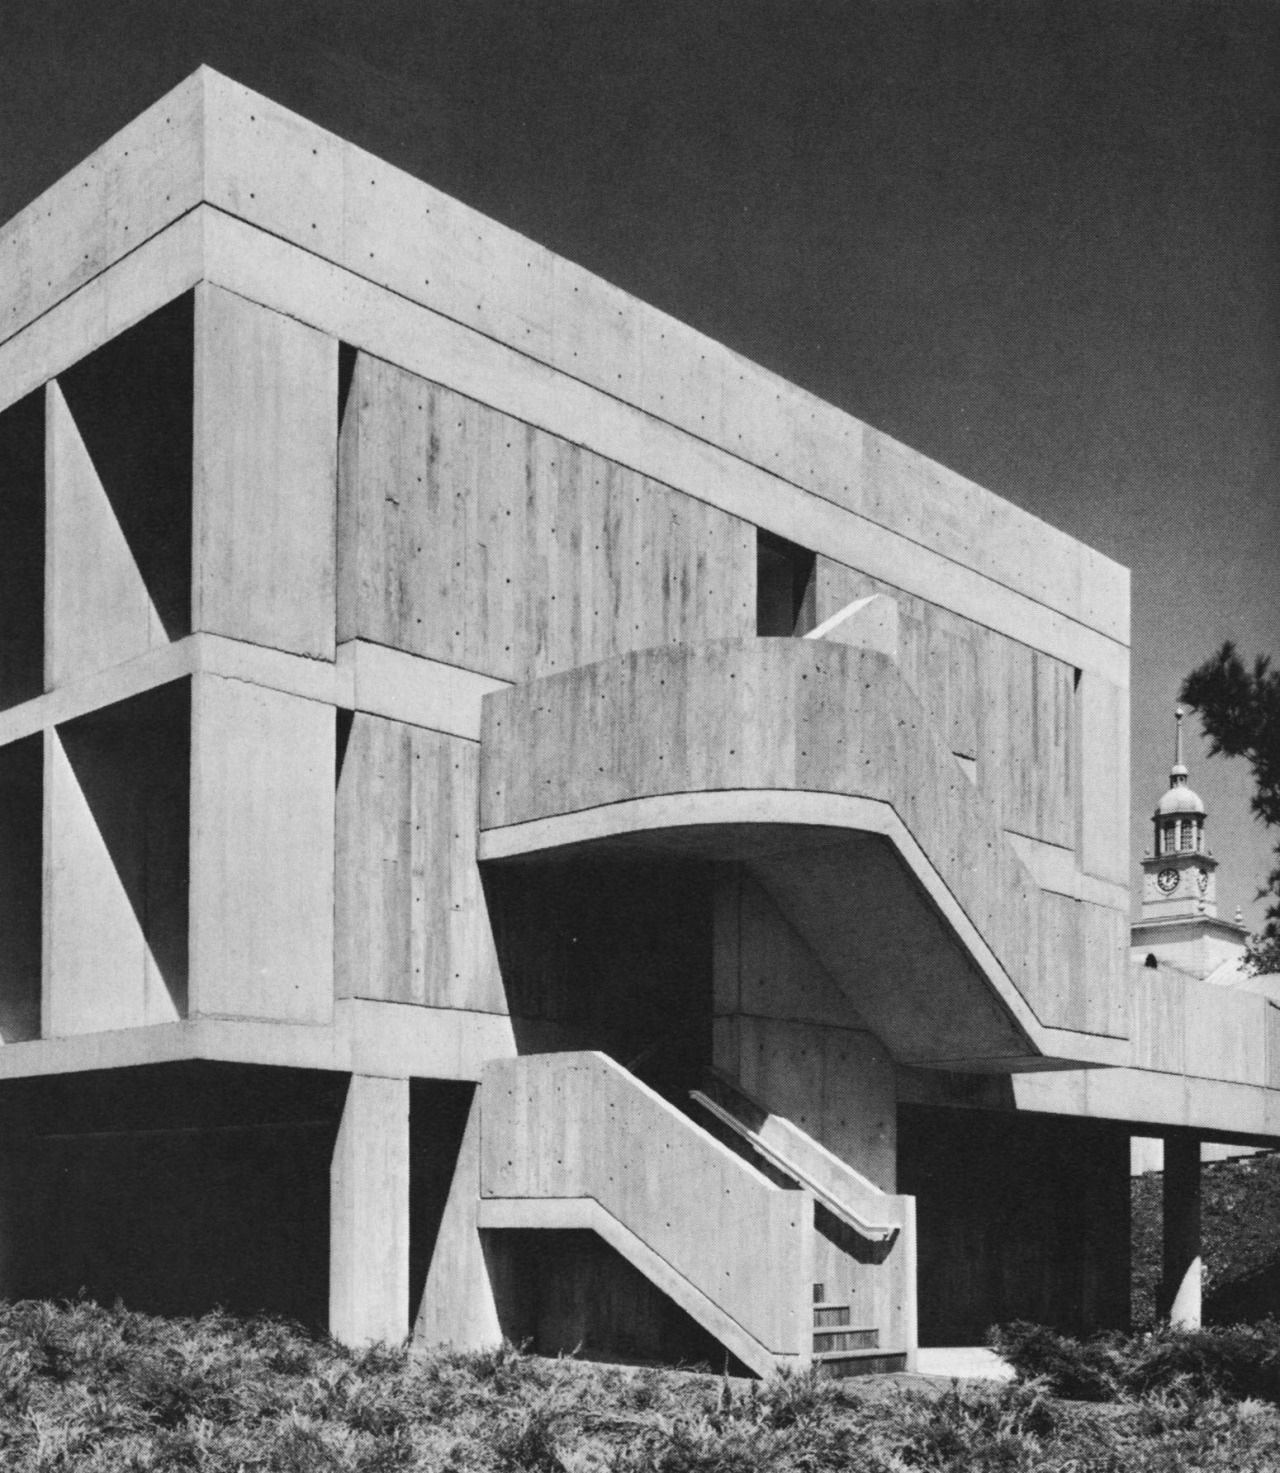 1940s Mission Style House Gets Brilliant Transformation In: Institute For Advanced Study, Princeton, New Jersey 1960's